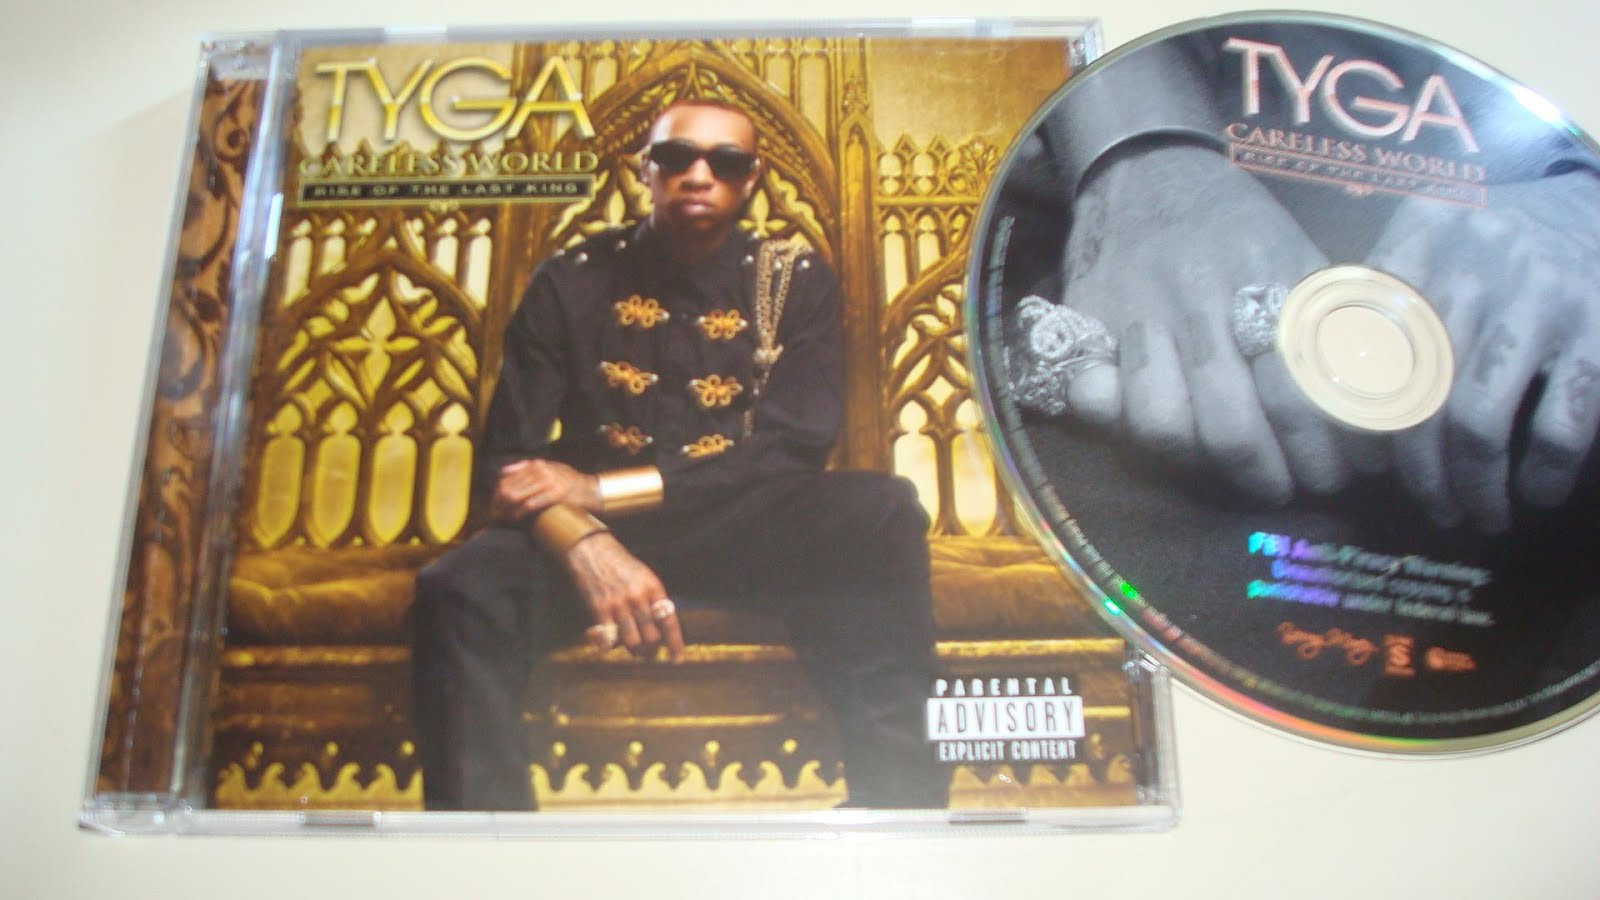 tyga careless world rise of the last king deluxe edition